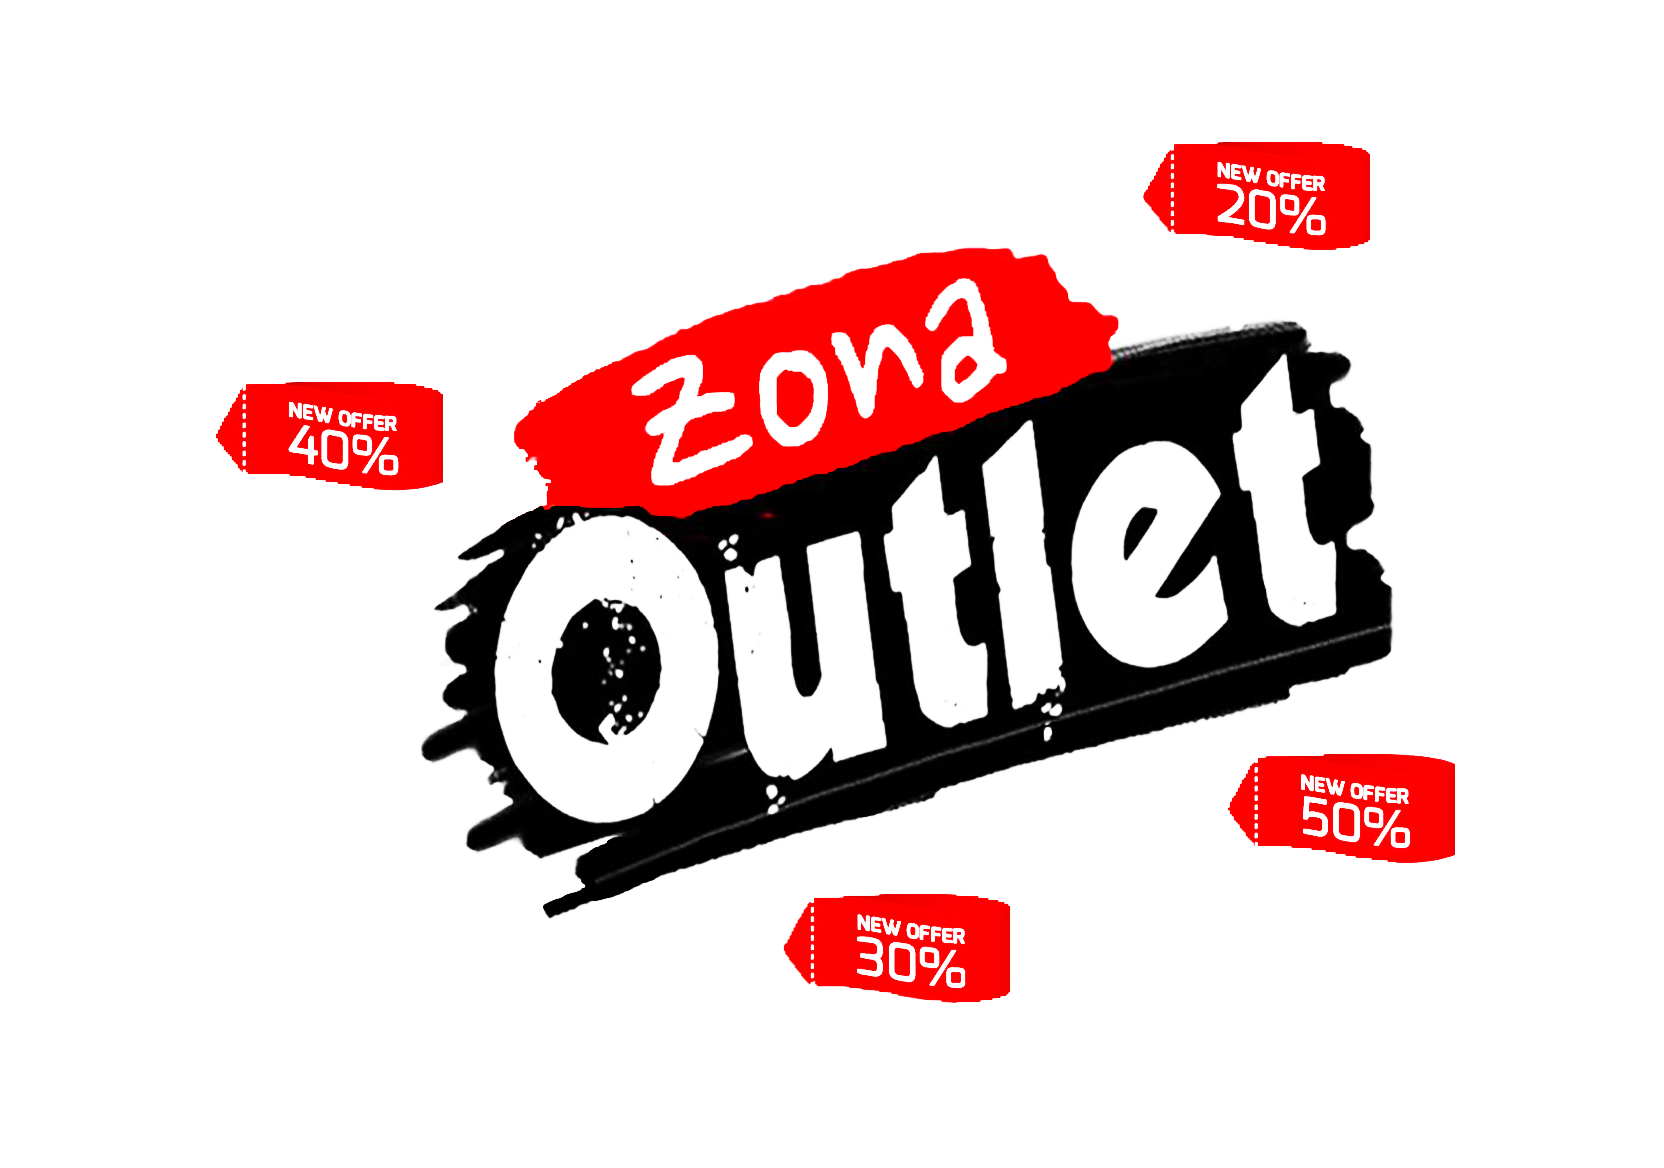 Zona Outlet Hípica